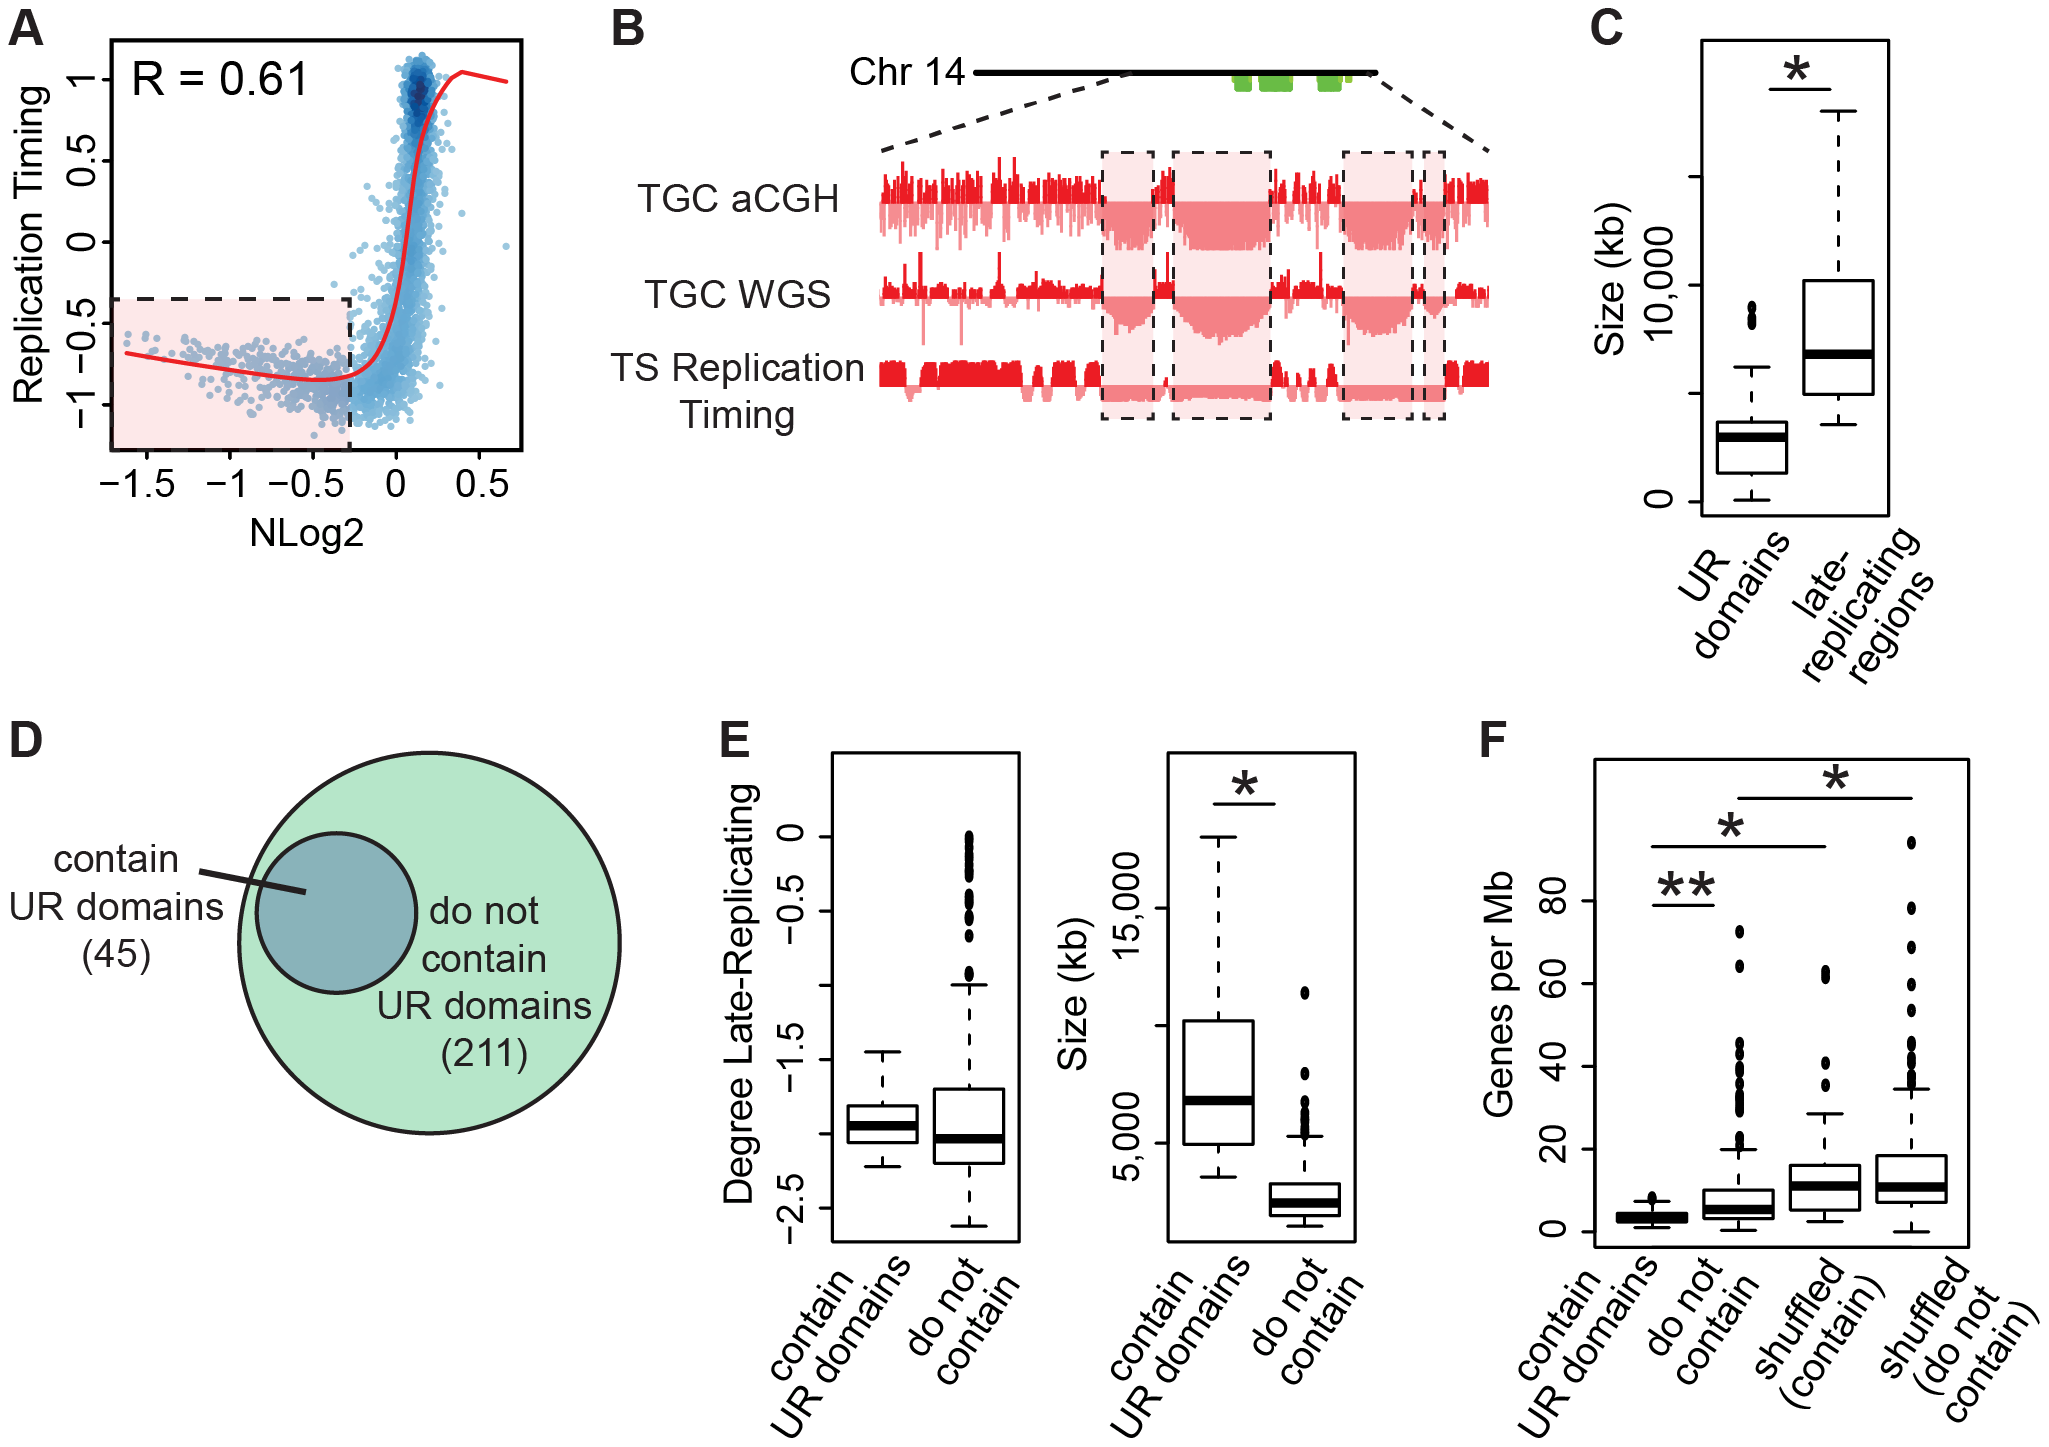 TGC UR domains are a subset of late-replicating regions in TS cells.